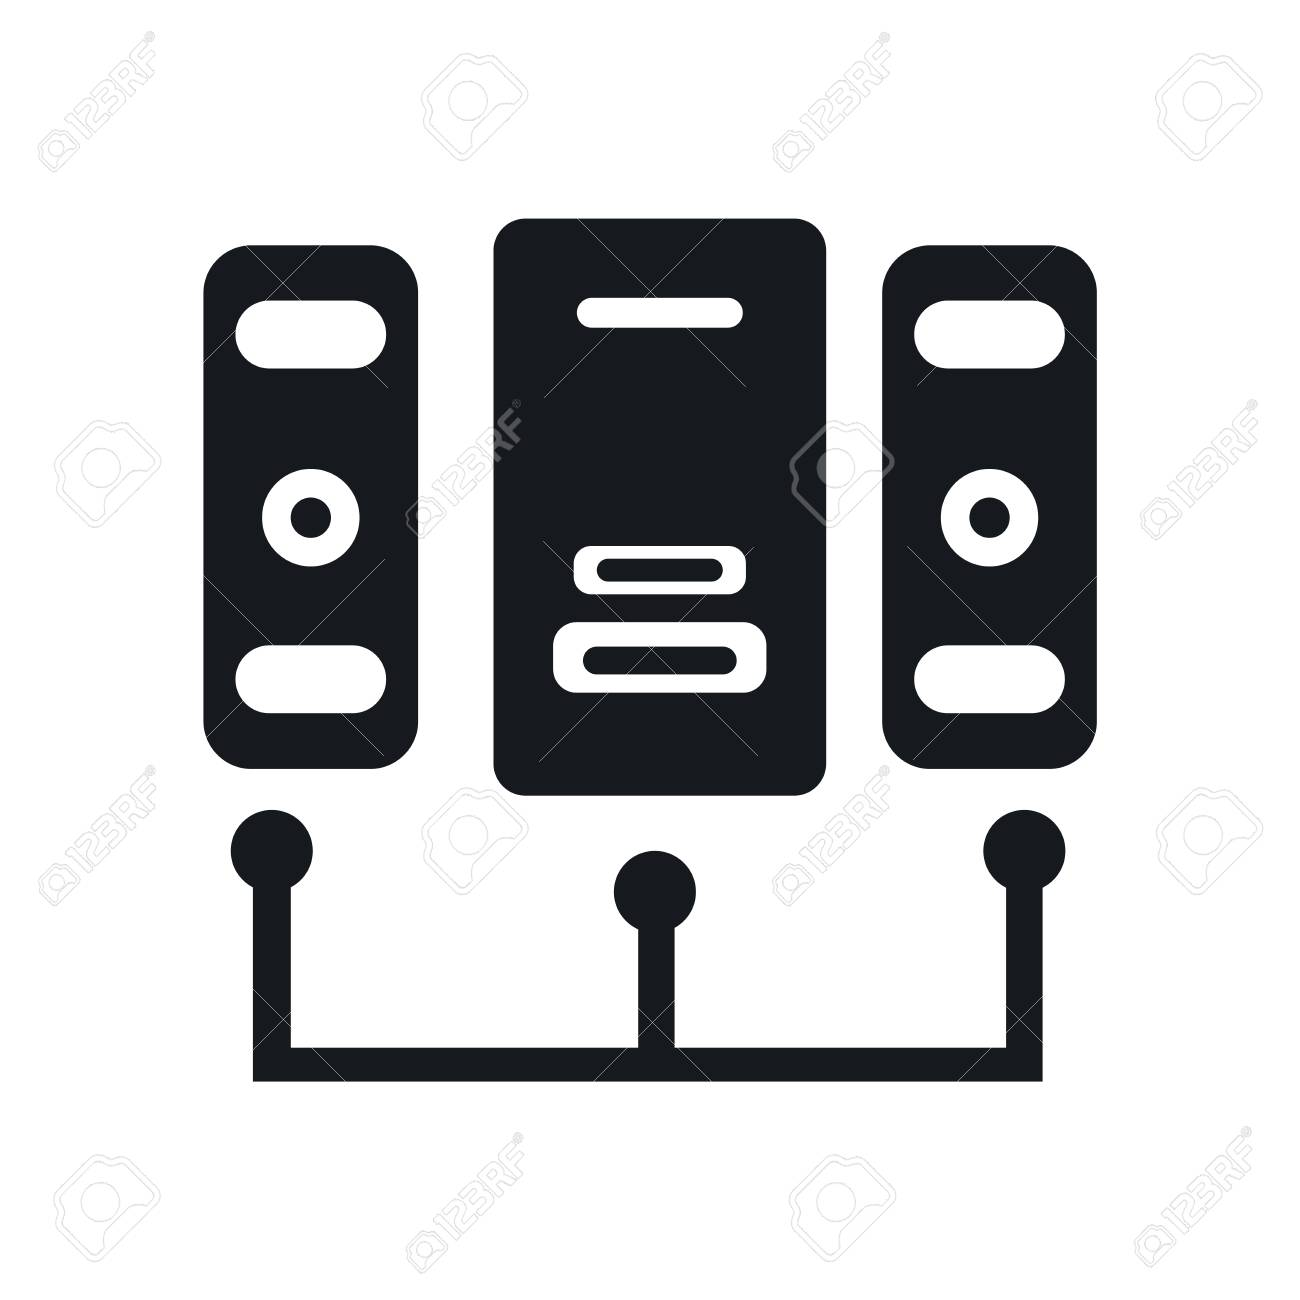 Server icon vector isolated on white background for your web